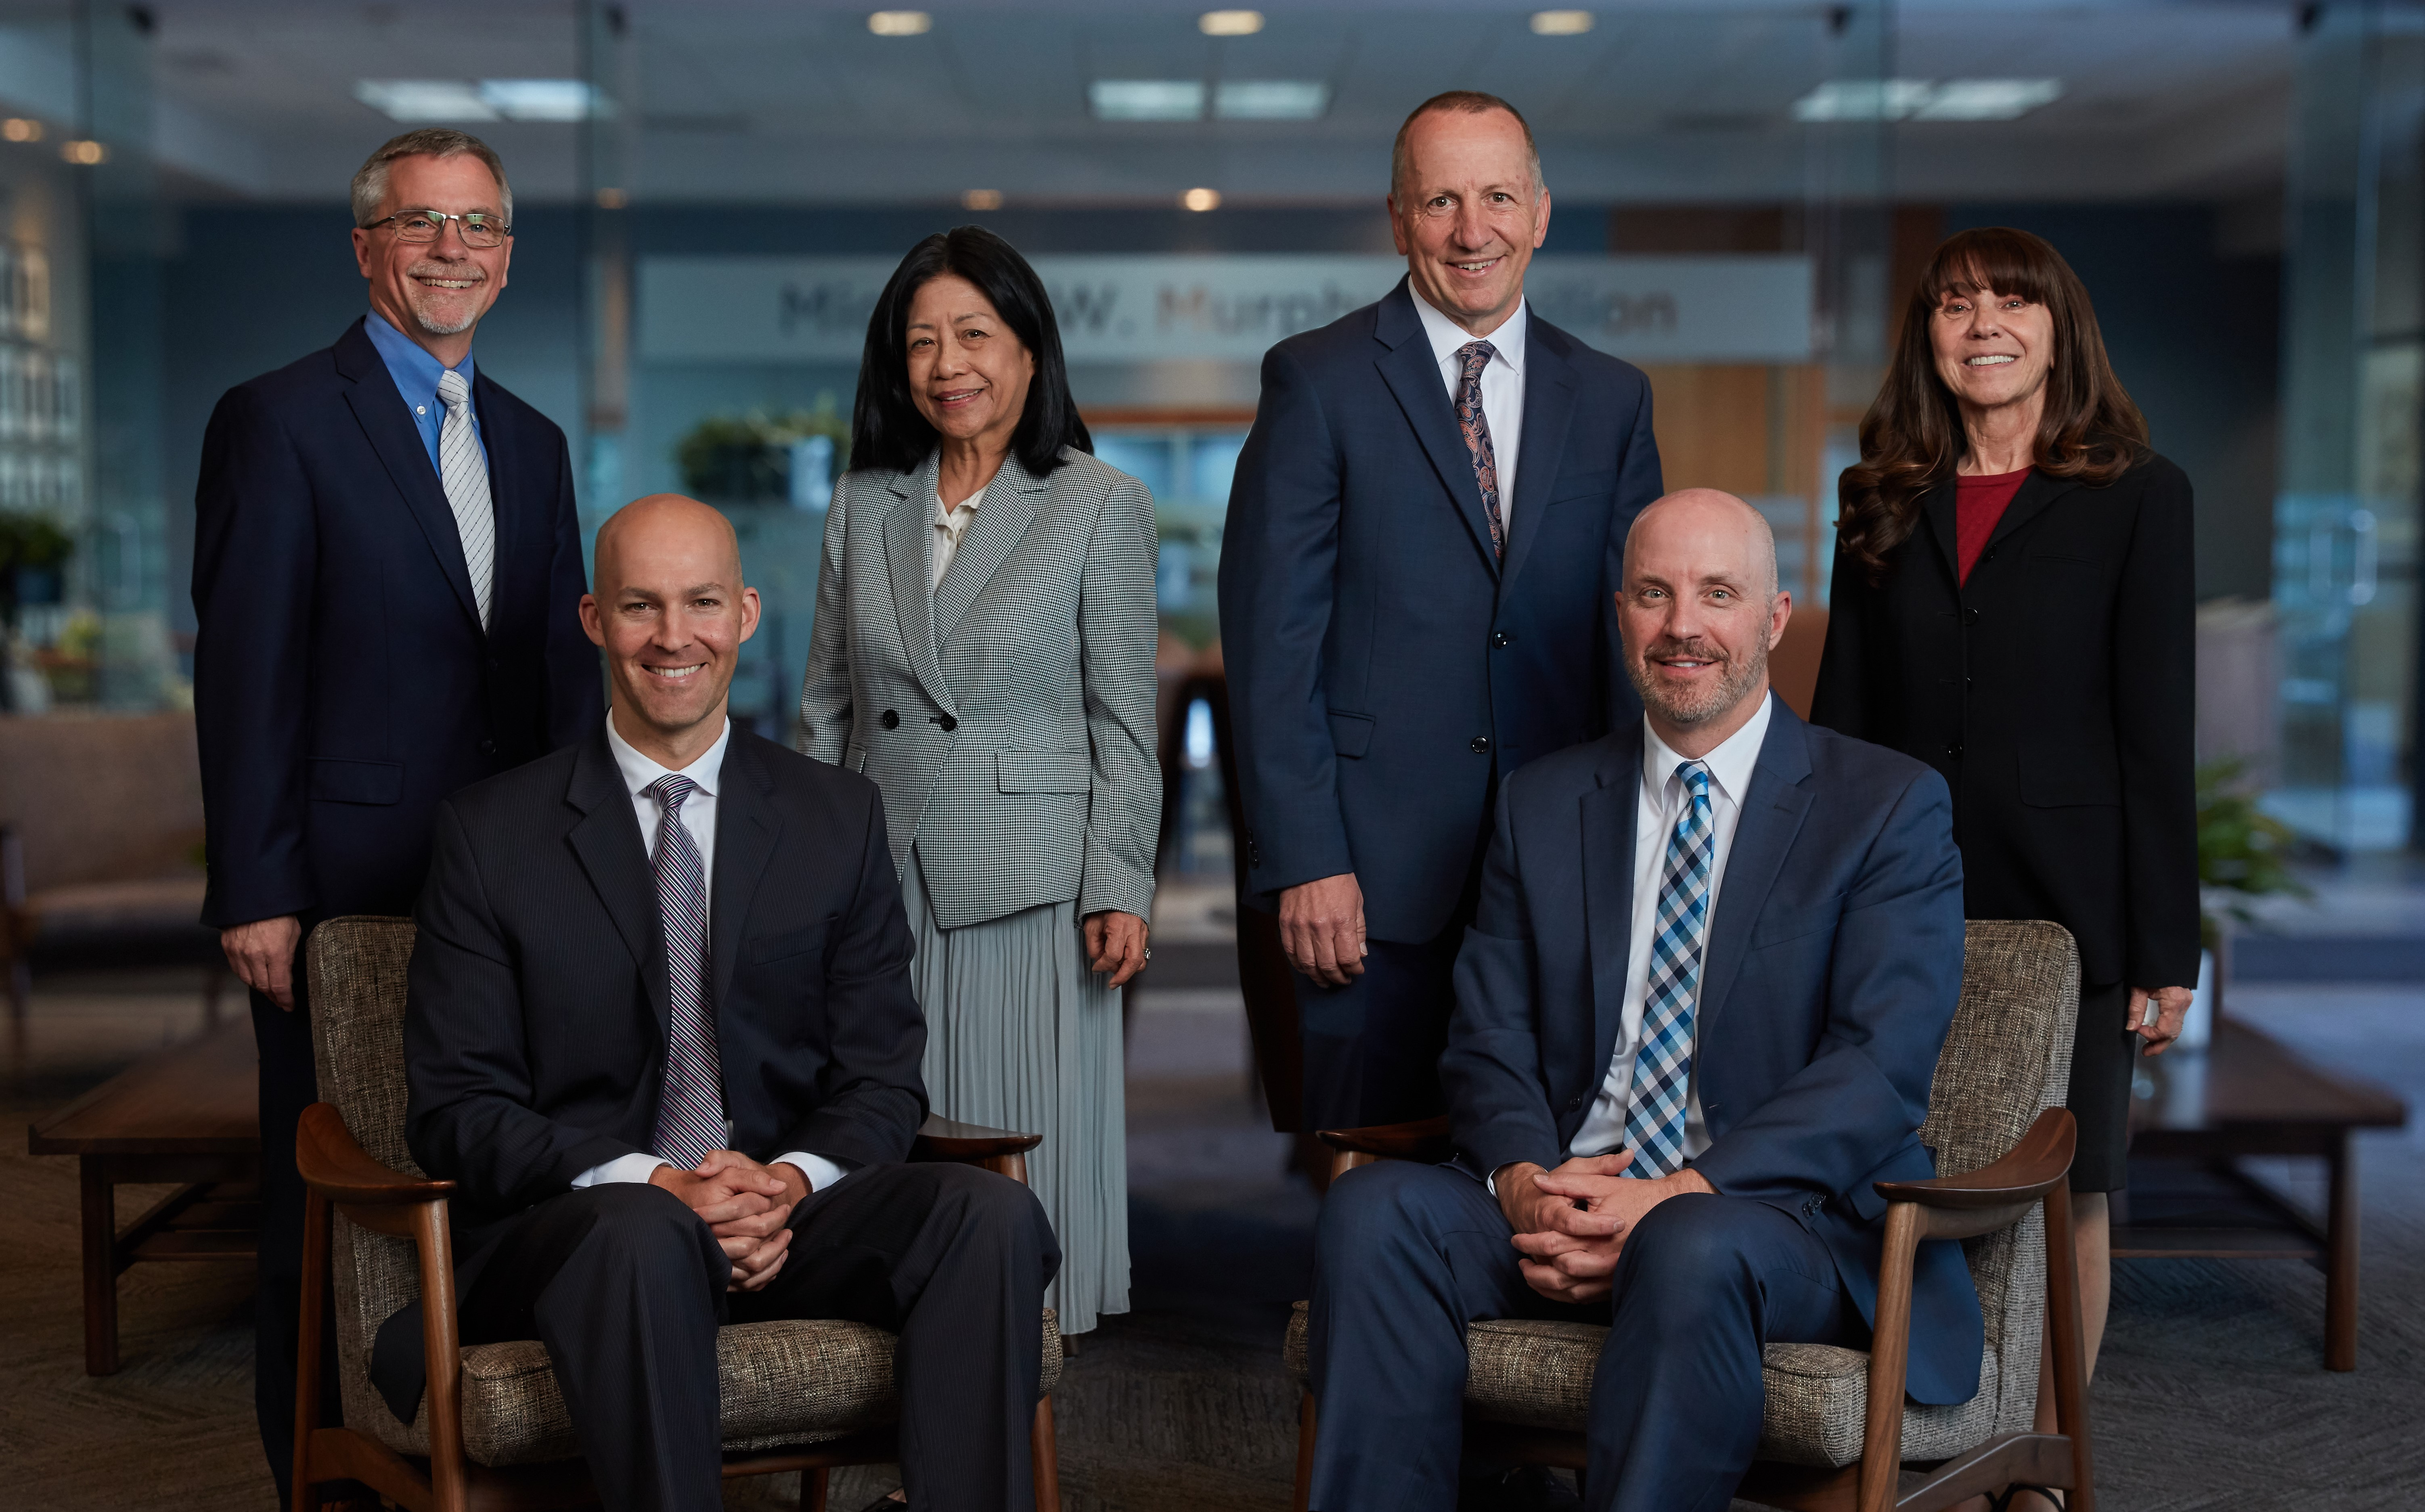 Sharp Community Medical Group Executive Team